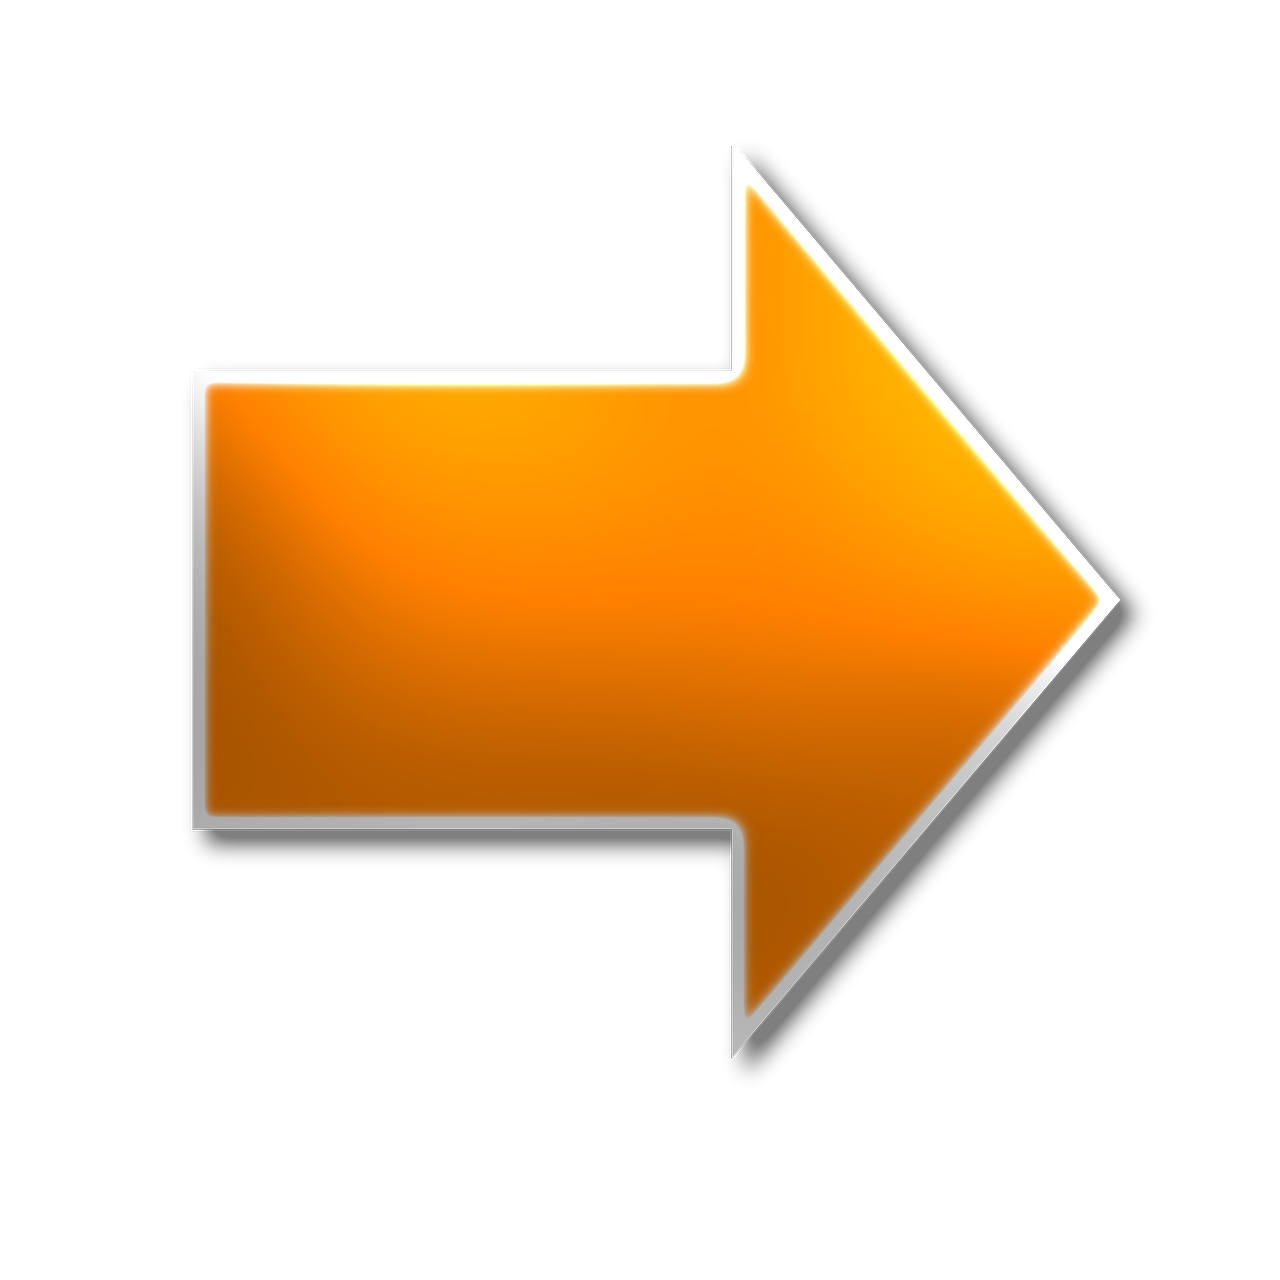 Right,arrow,yellow,pointing,directional - free photo from